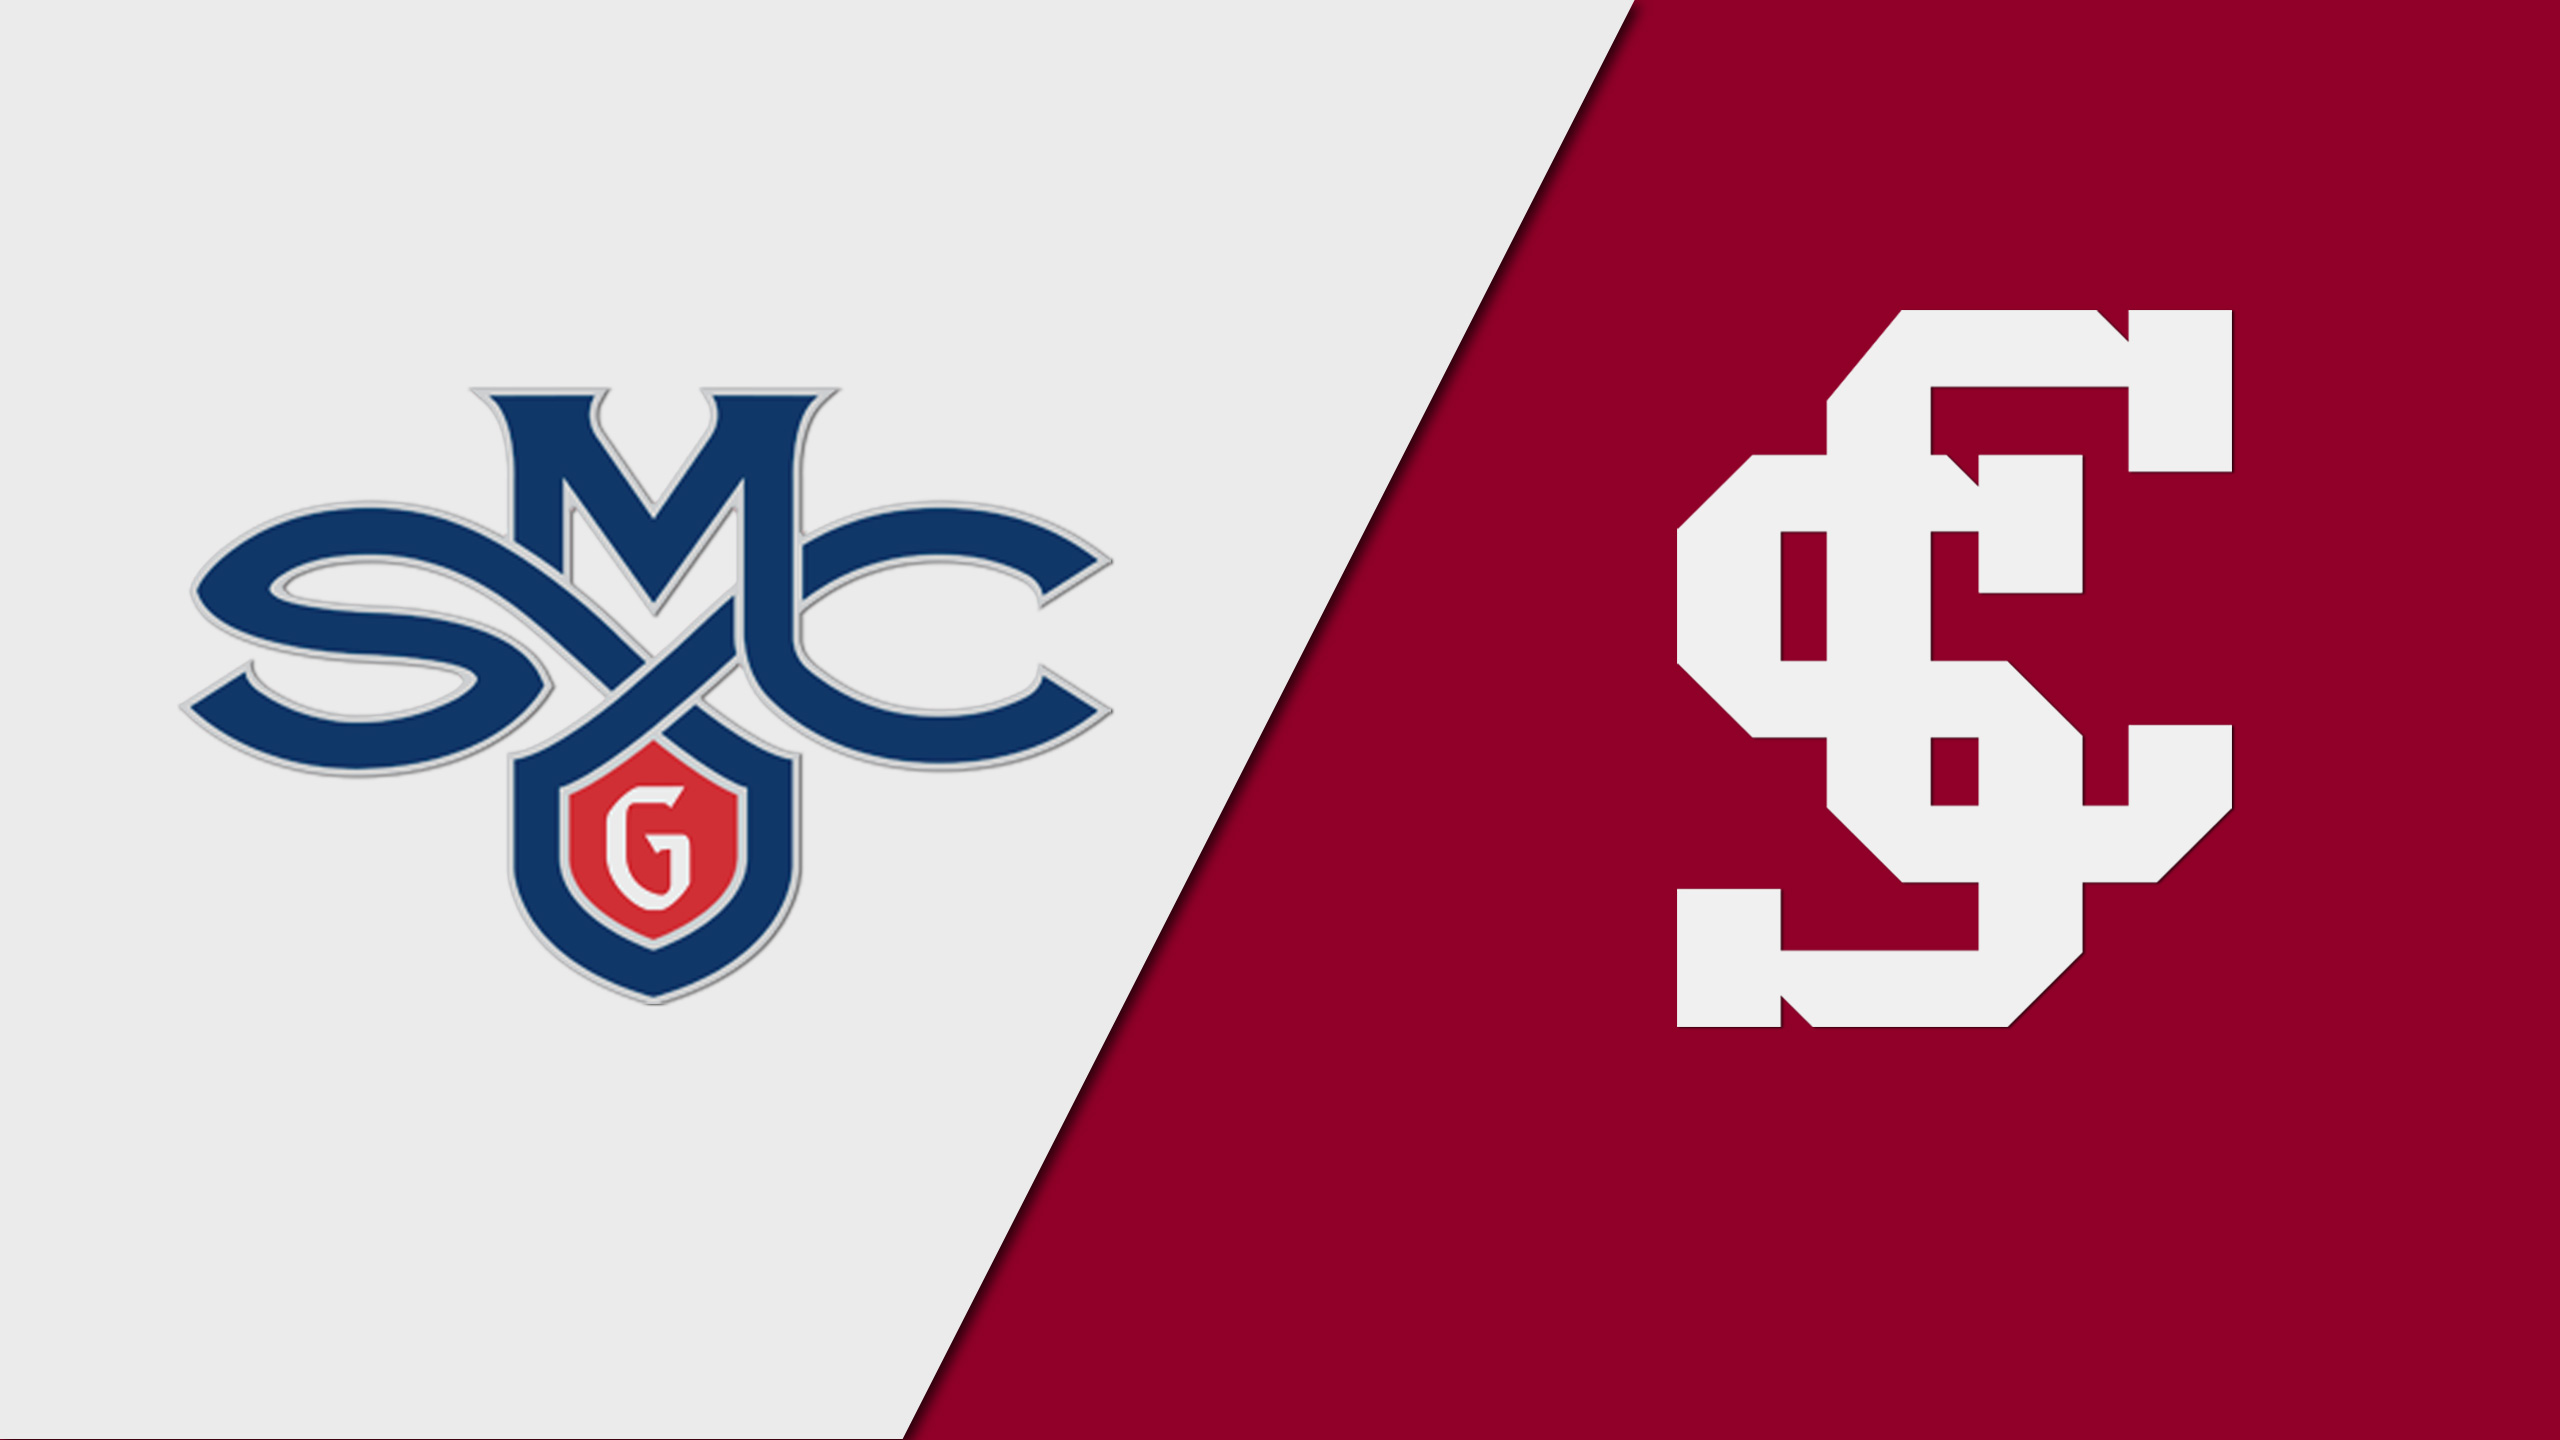 Saint Mary's vs. Santa Clara (M Basketball)